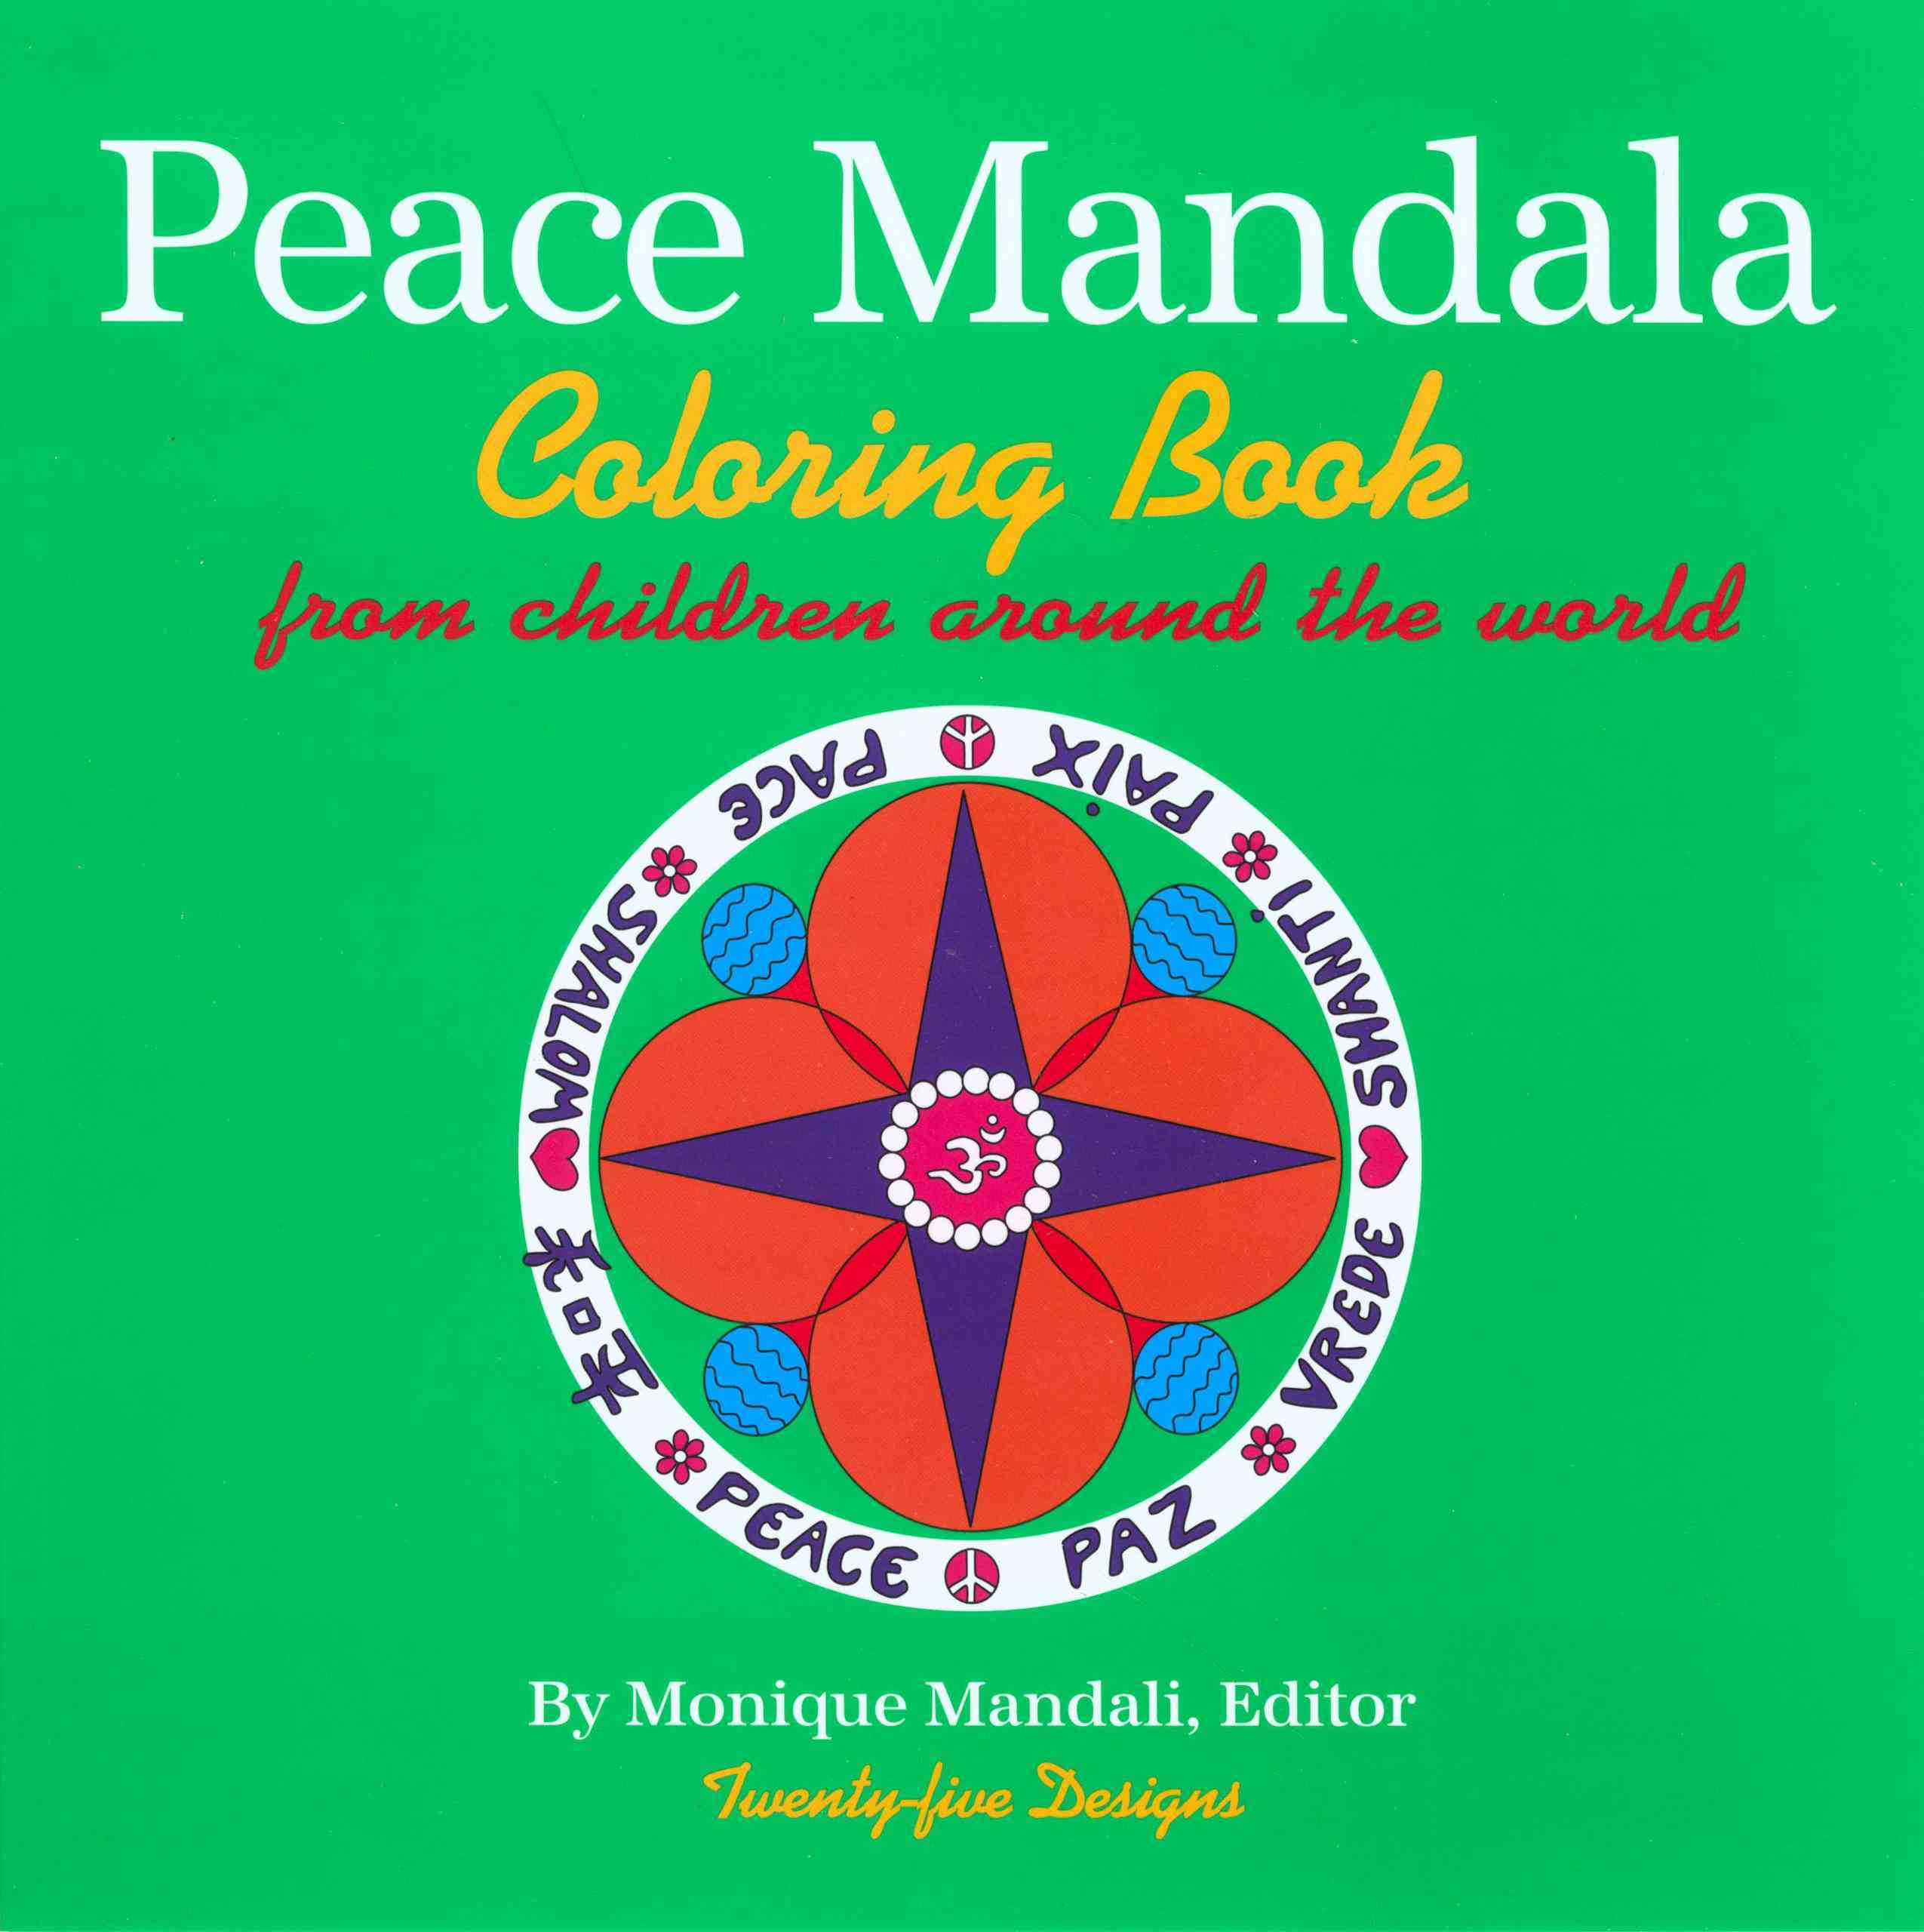 Peace Mandala: Coloring Book from Children Around the World (Paperback)